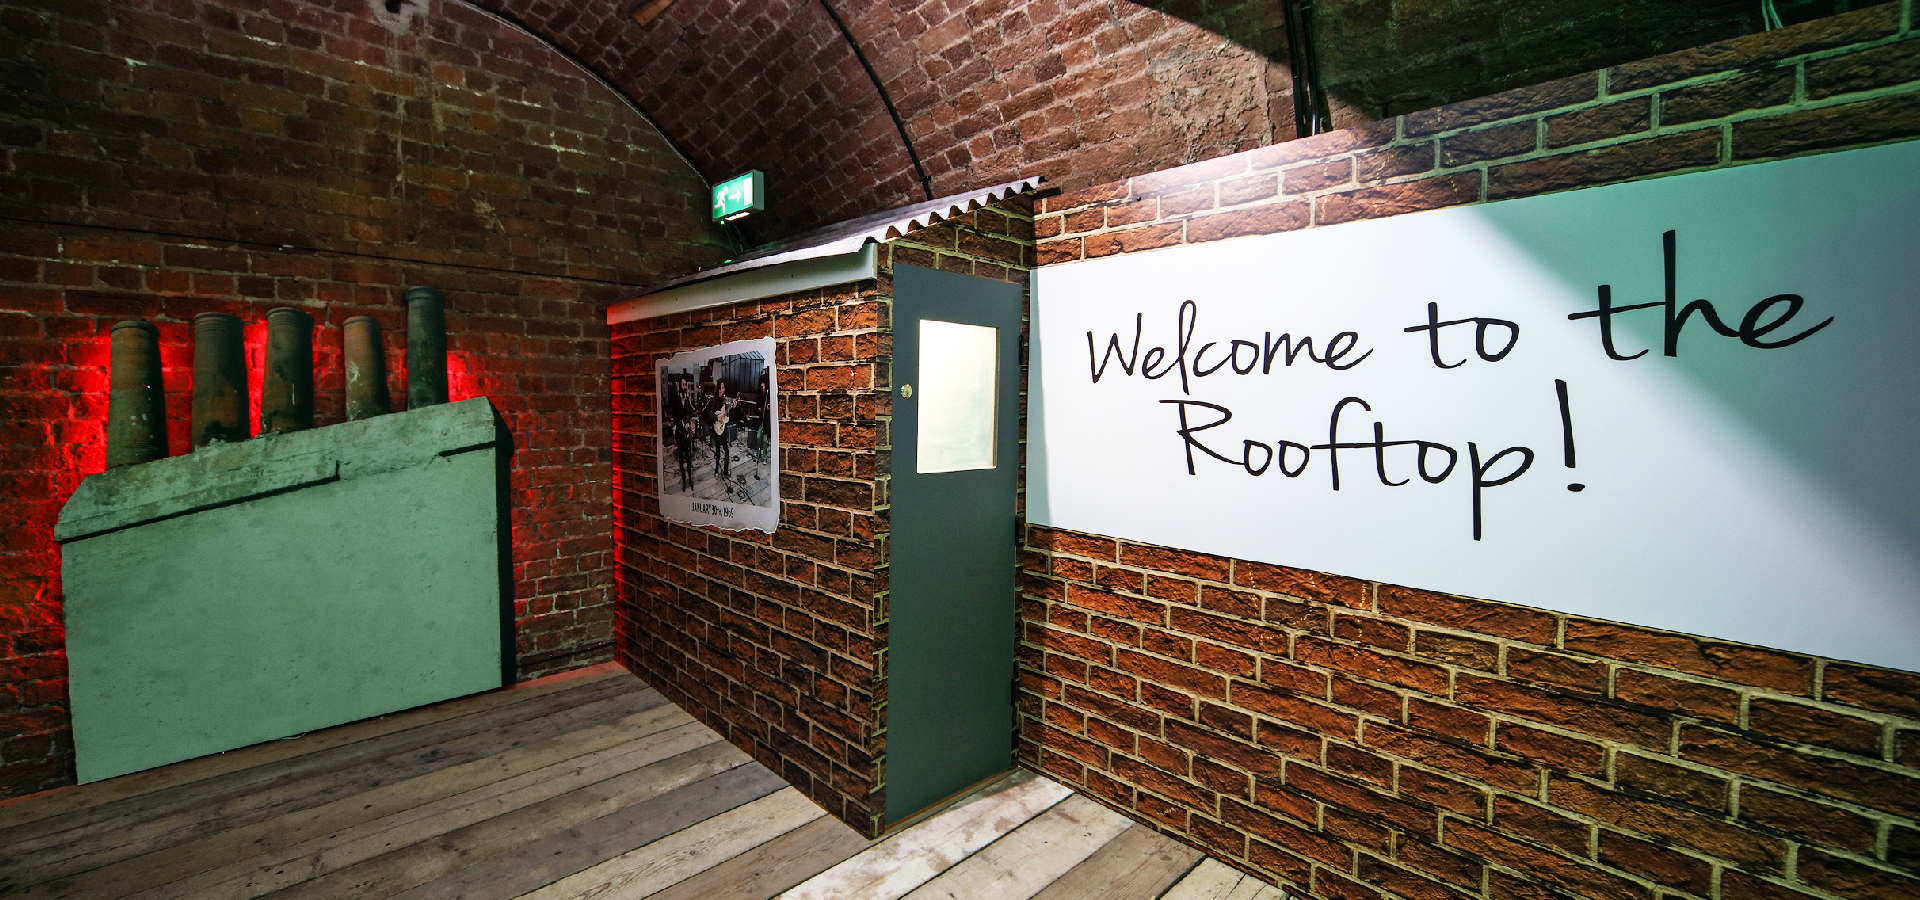 The Rooftop: 50 years on...